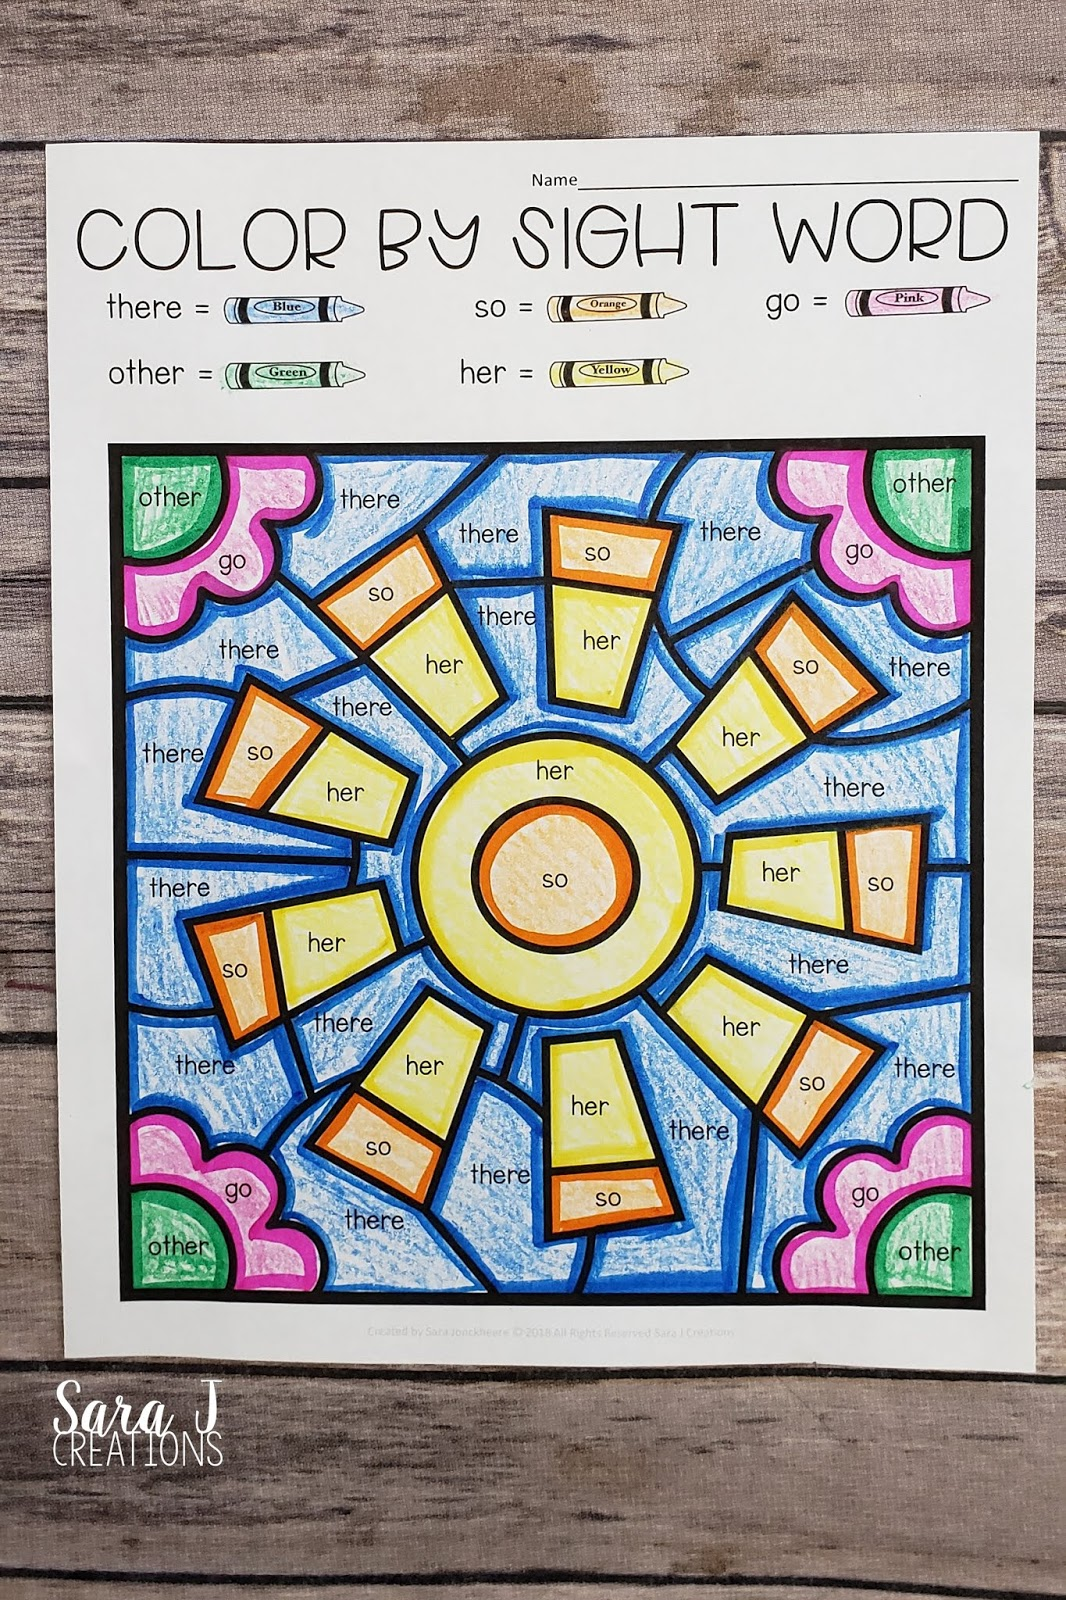 Free Summer Color By Sight Word Coloring Pages Sara J Creations